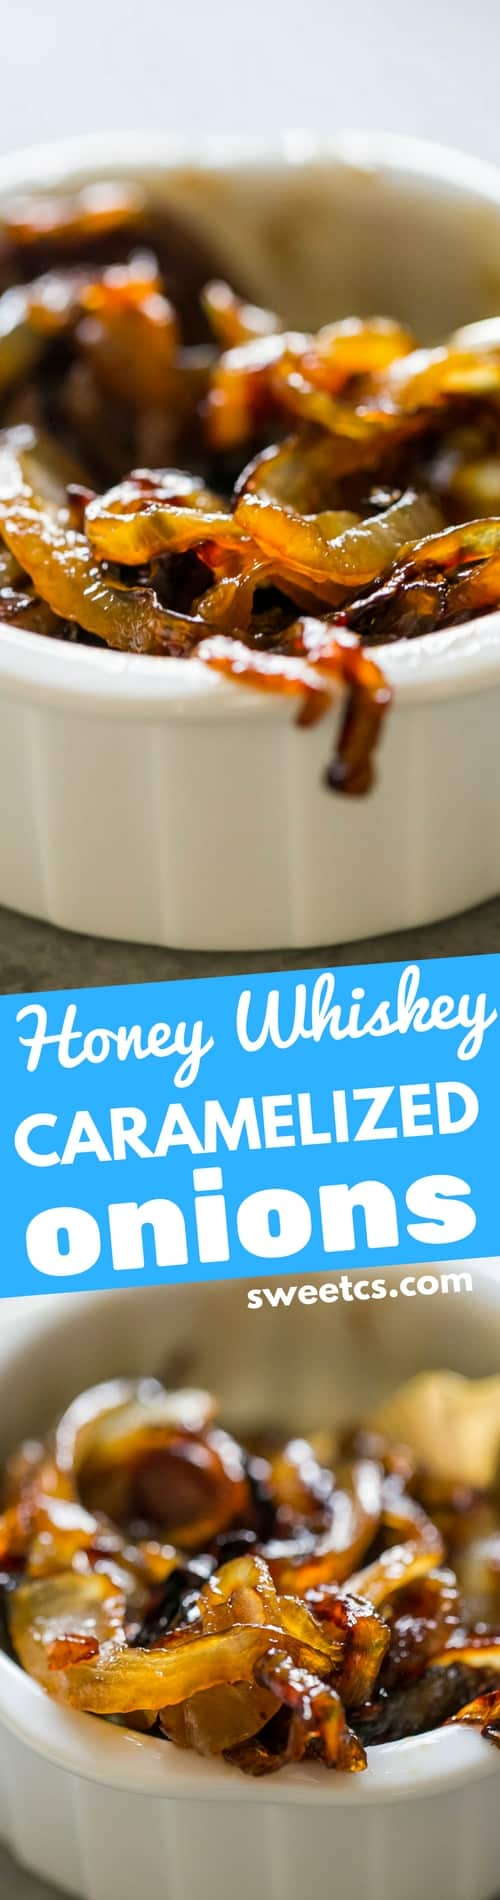 Honey Whiskey Caramelized Onions - these are my favorite on burgers!!